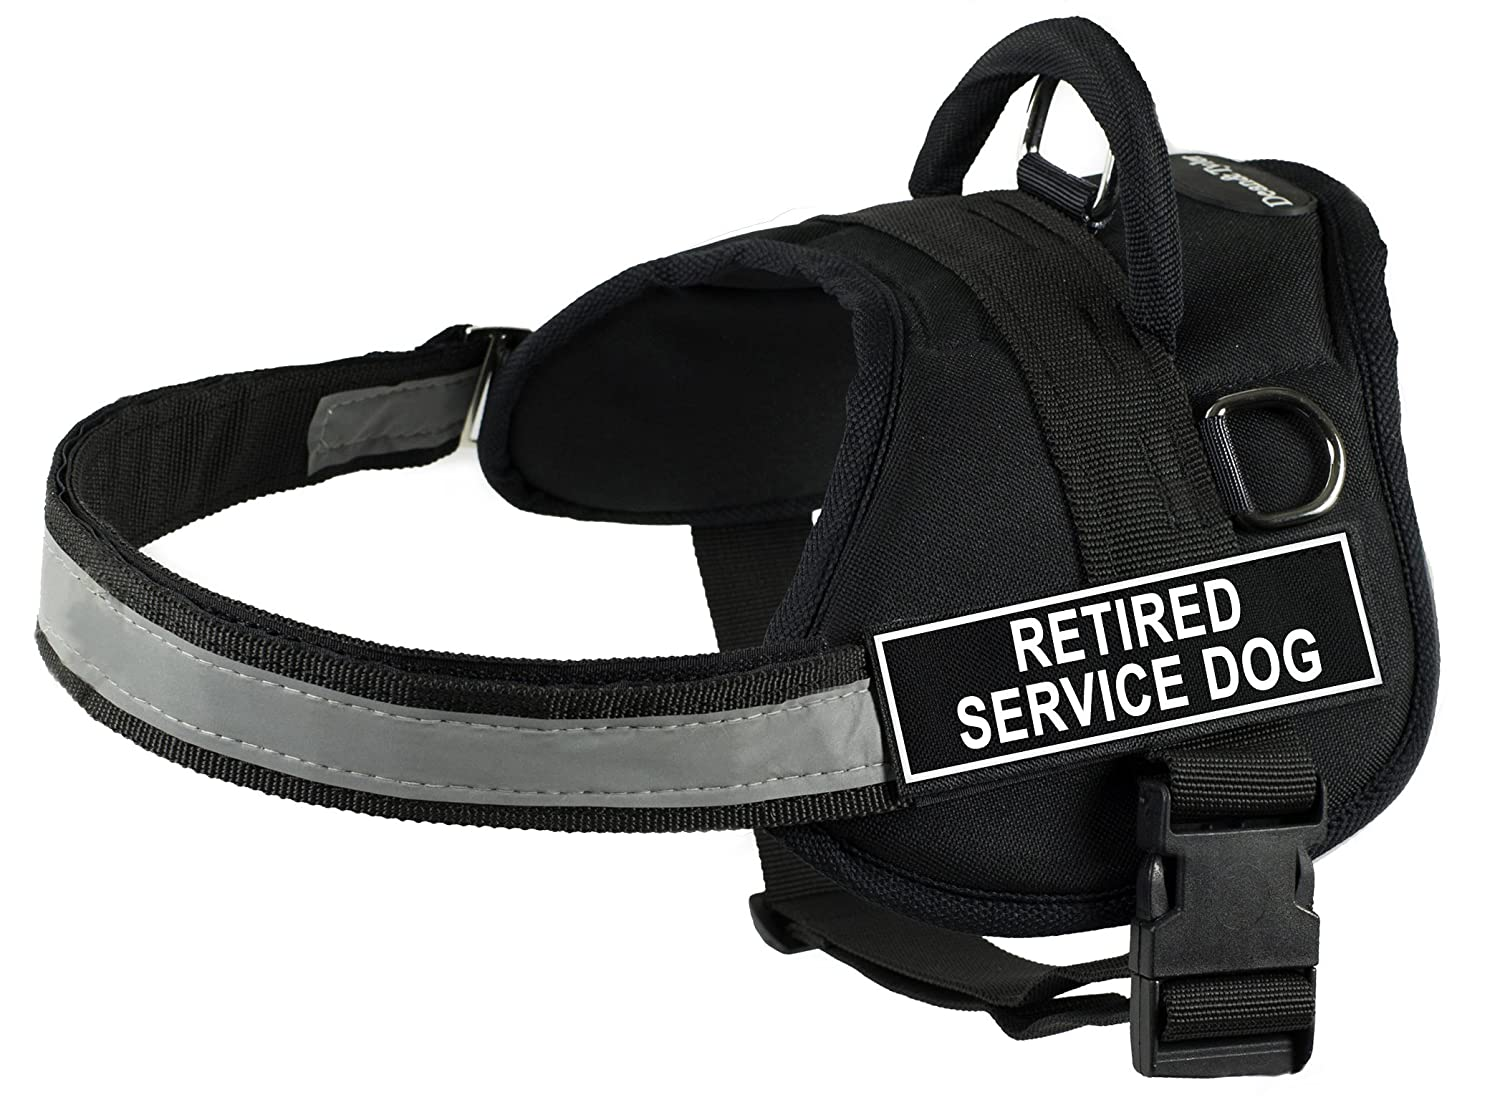 Dean & Tyler 18-Inch to 21-Inch Pet Harness, XX-Small, Retired Service Dog, Black